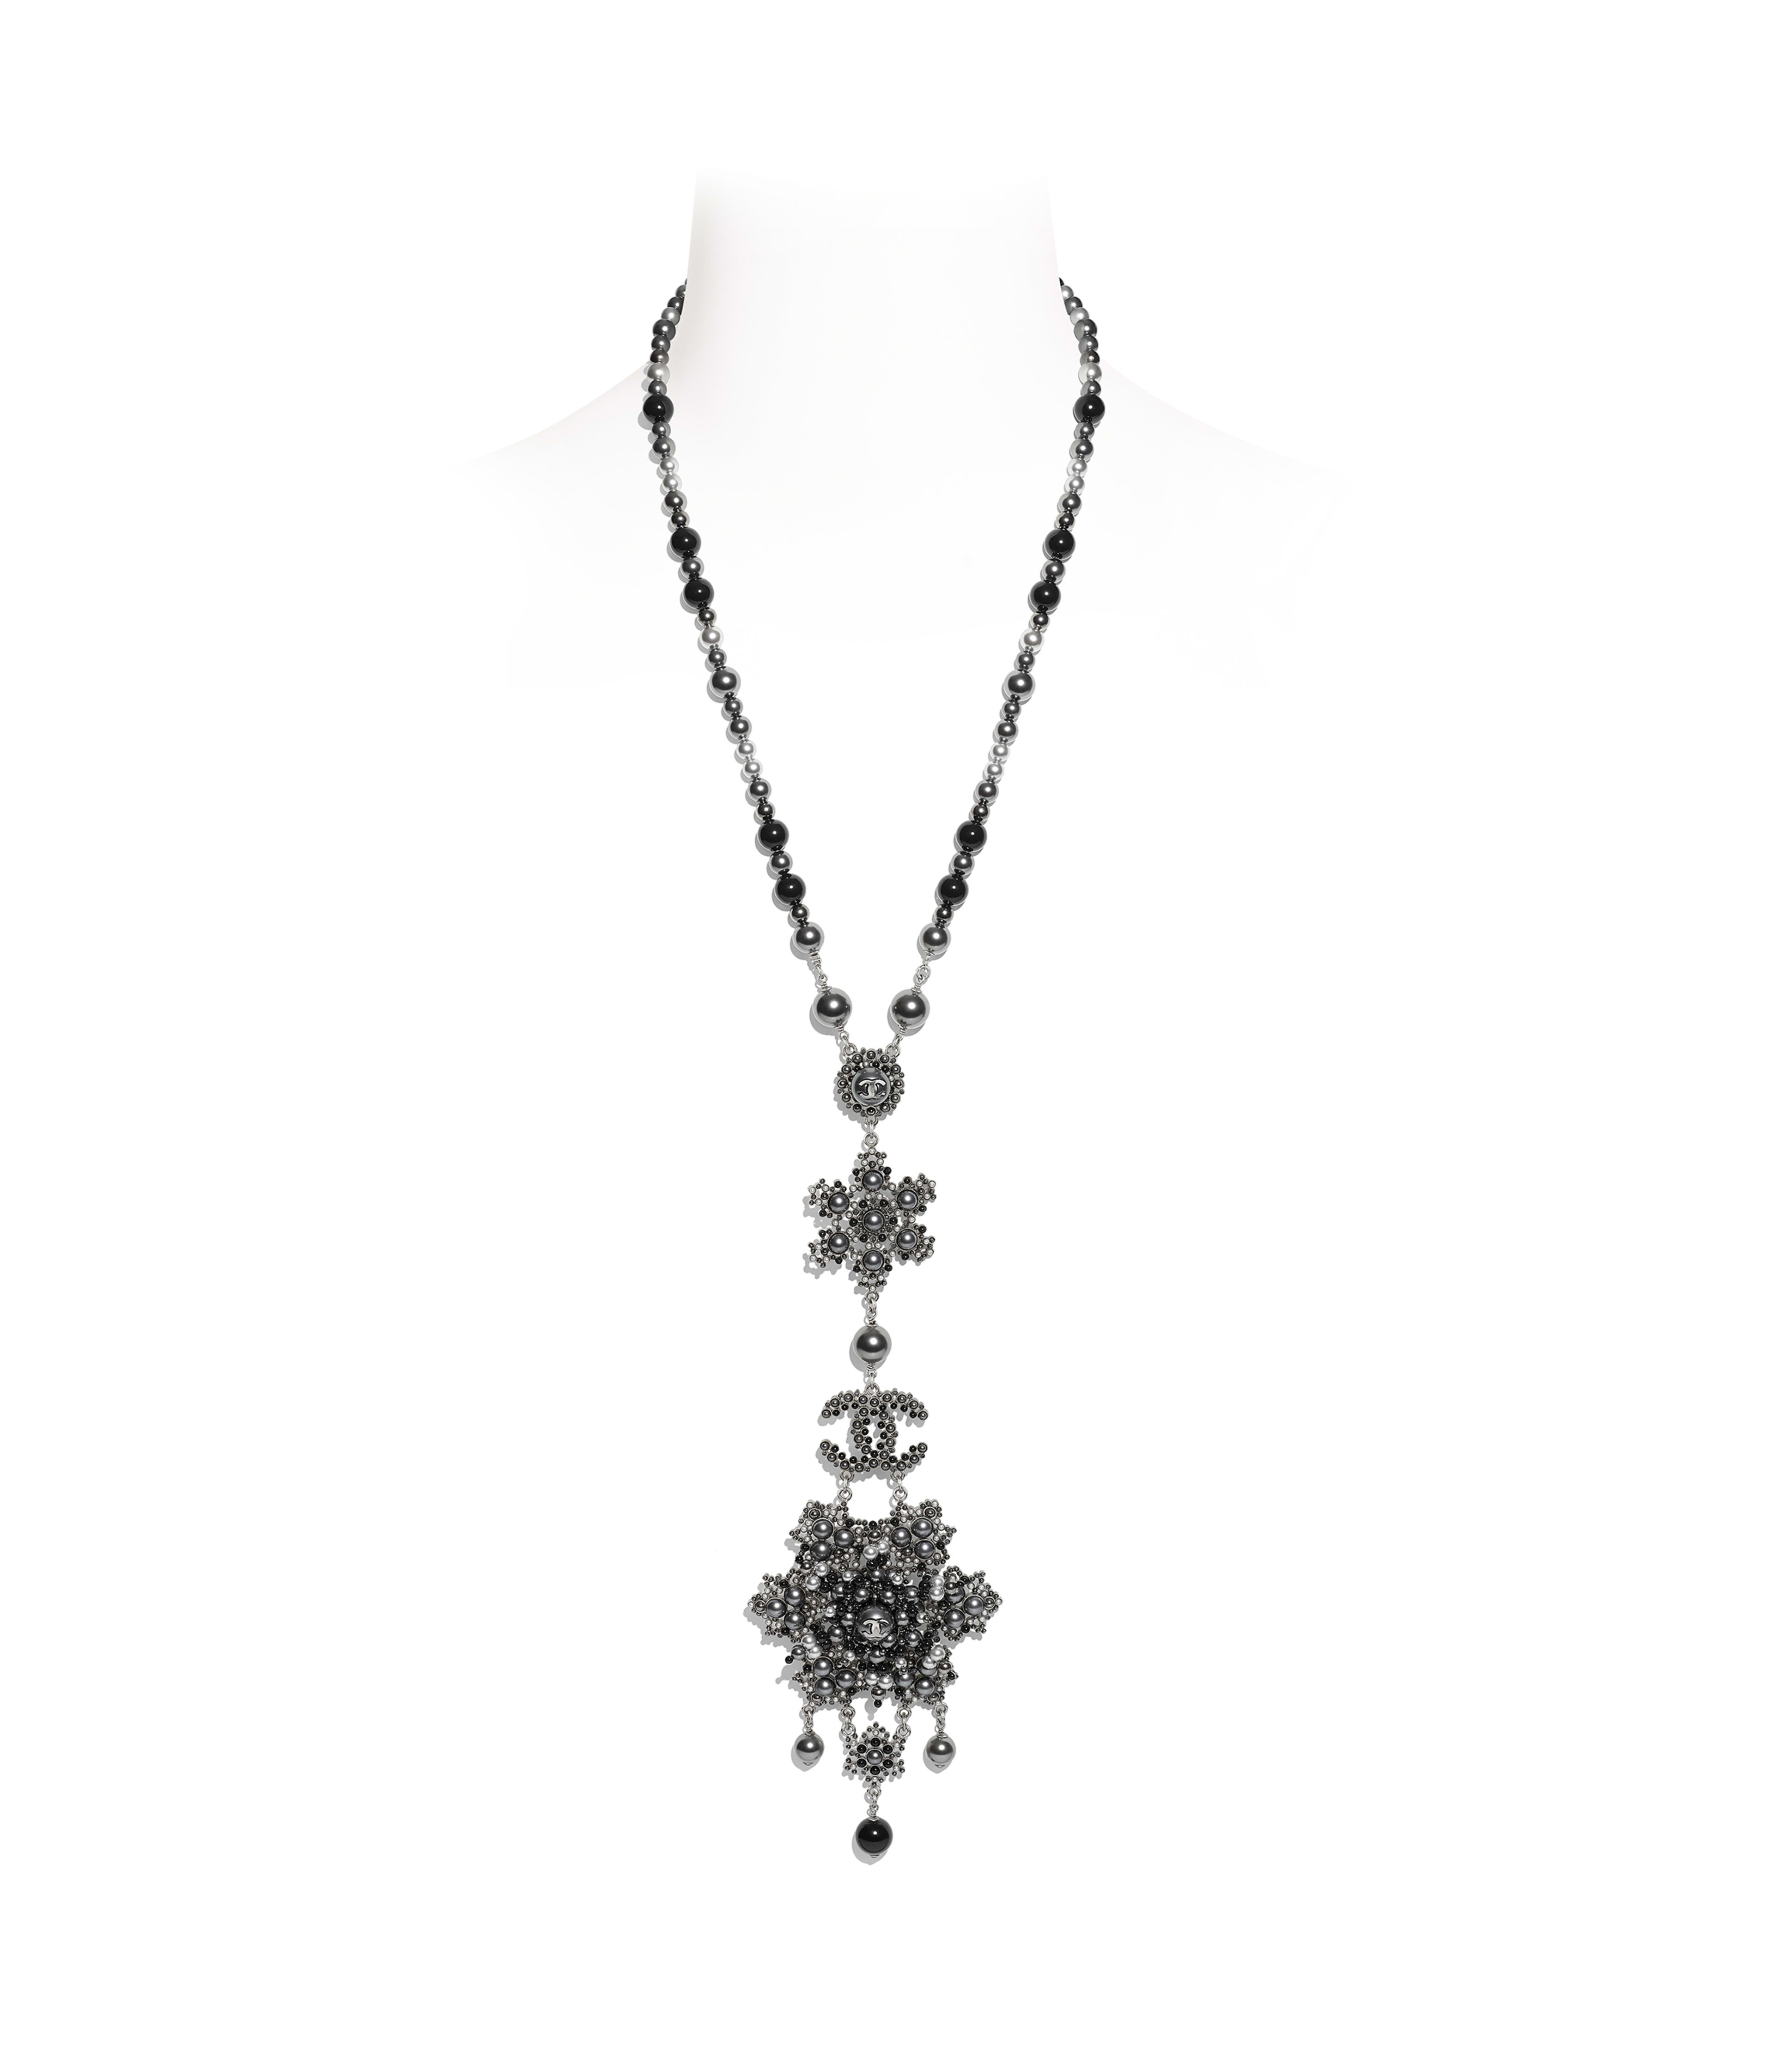 Necklaces – Costume Jewelry | Chanel Intended For Latest Heart Of Winter Necklaces (View 6 of 25)